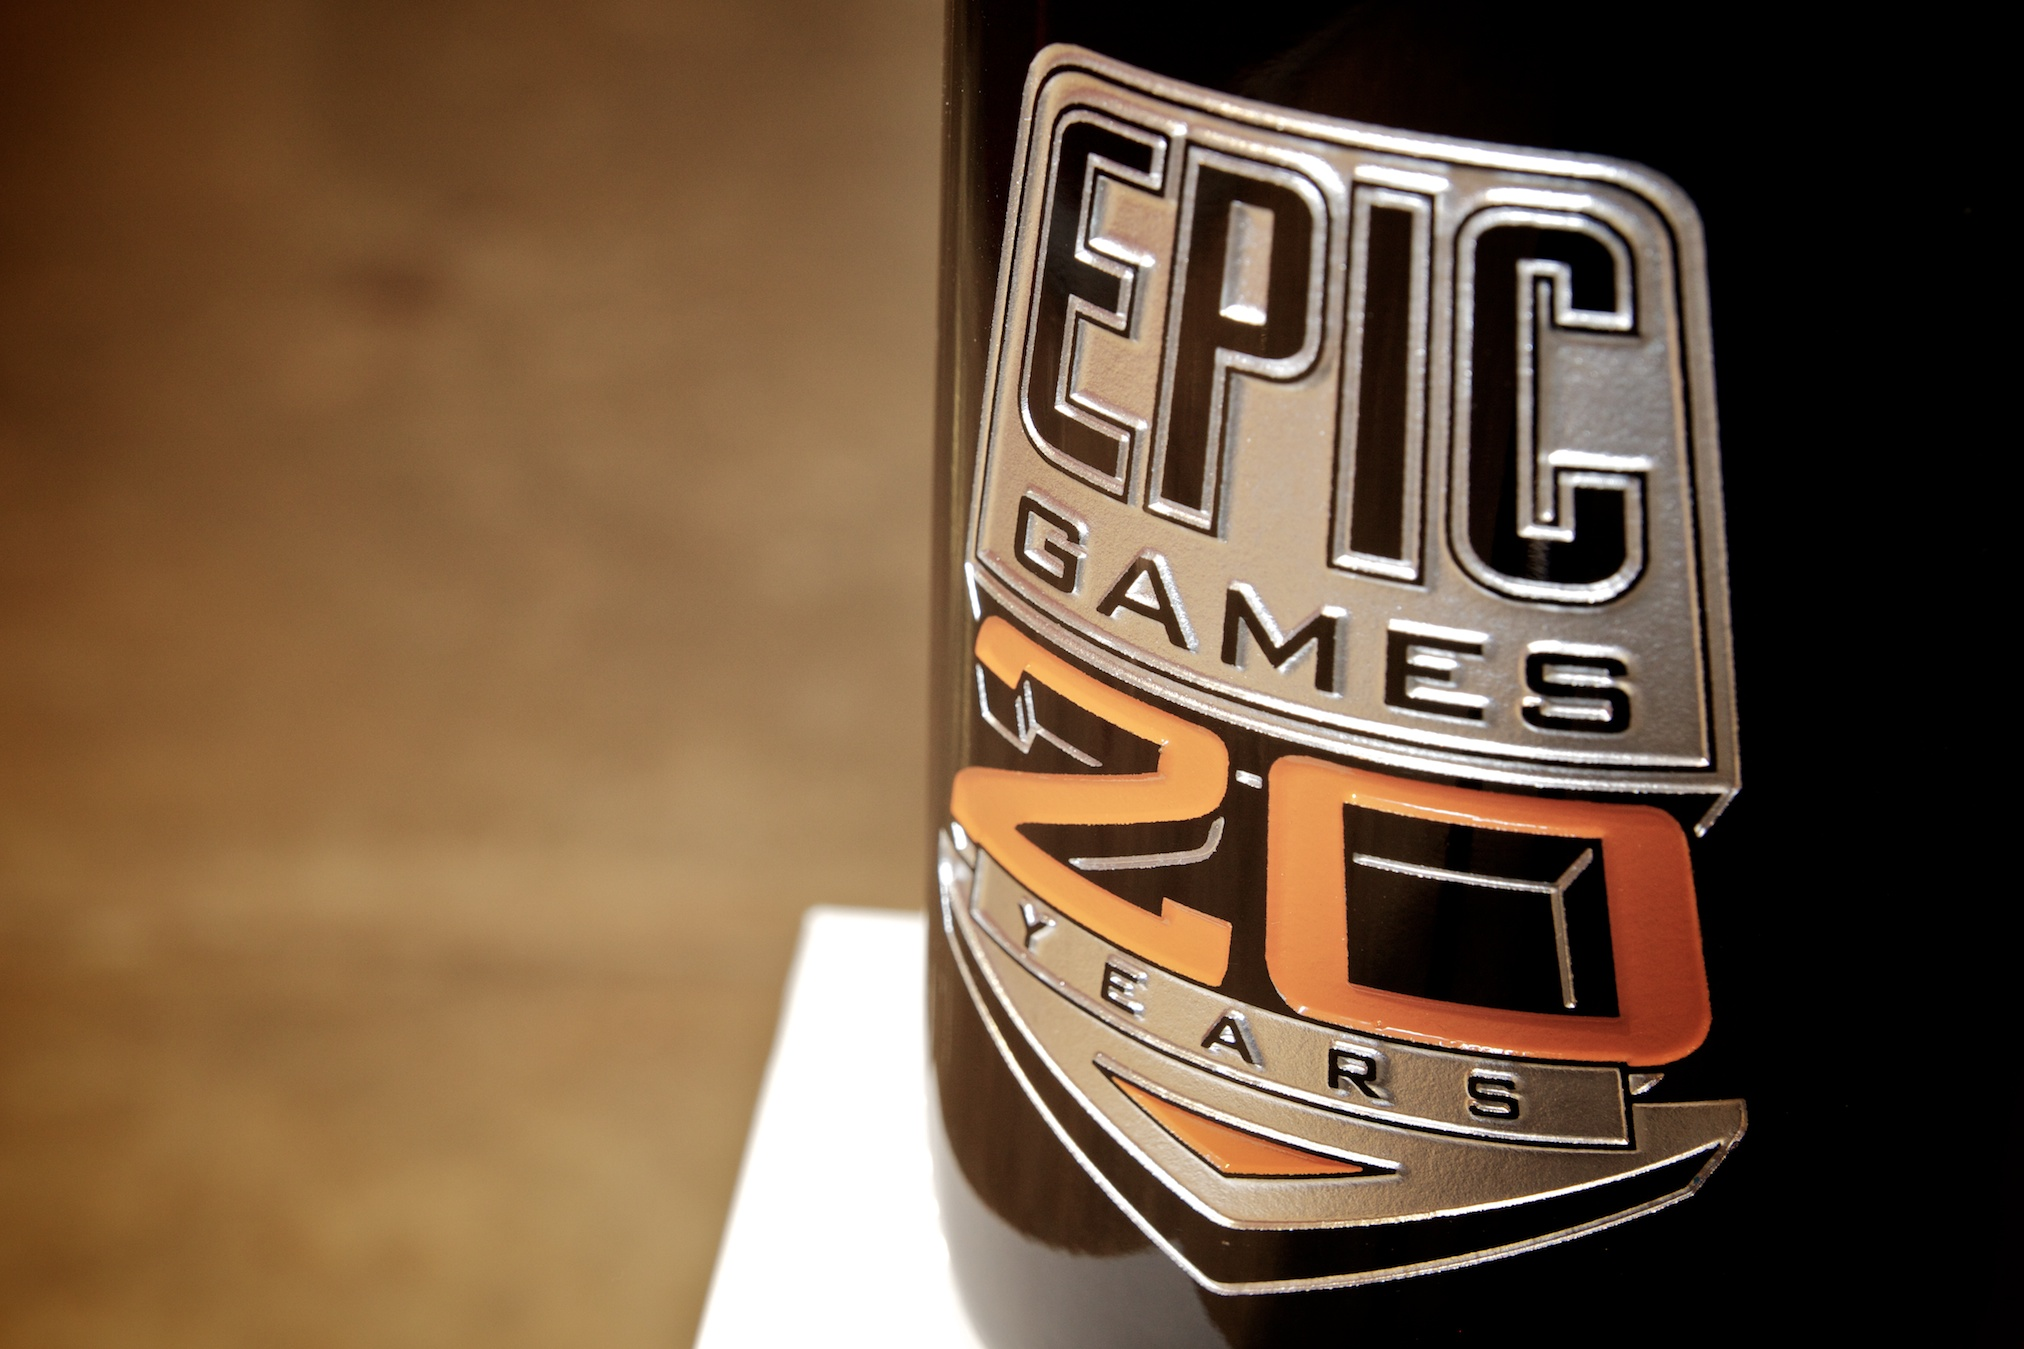 epic games - photo #17